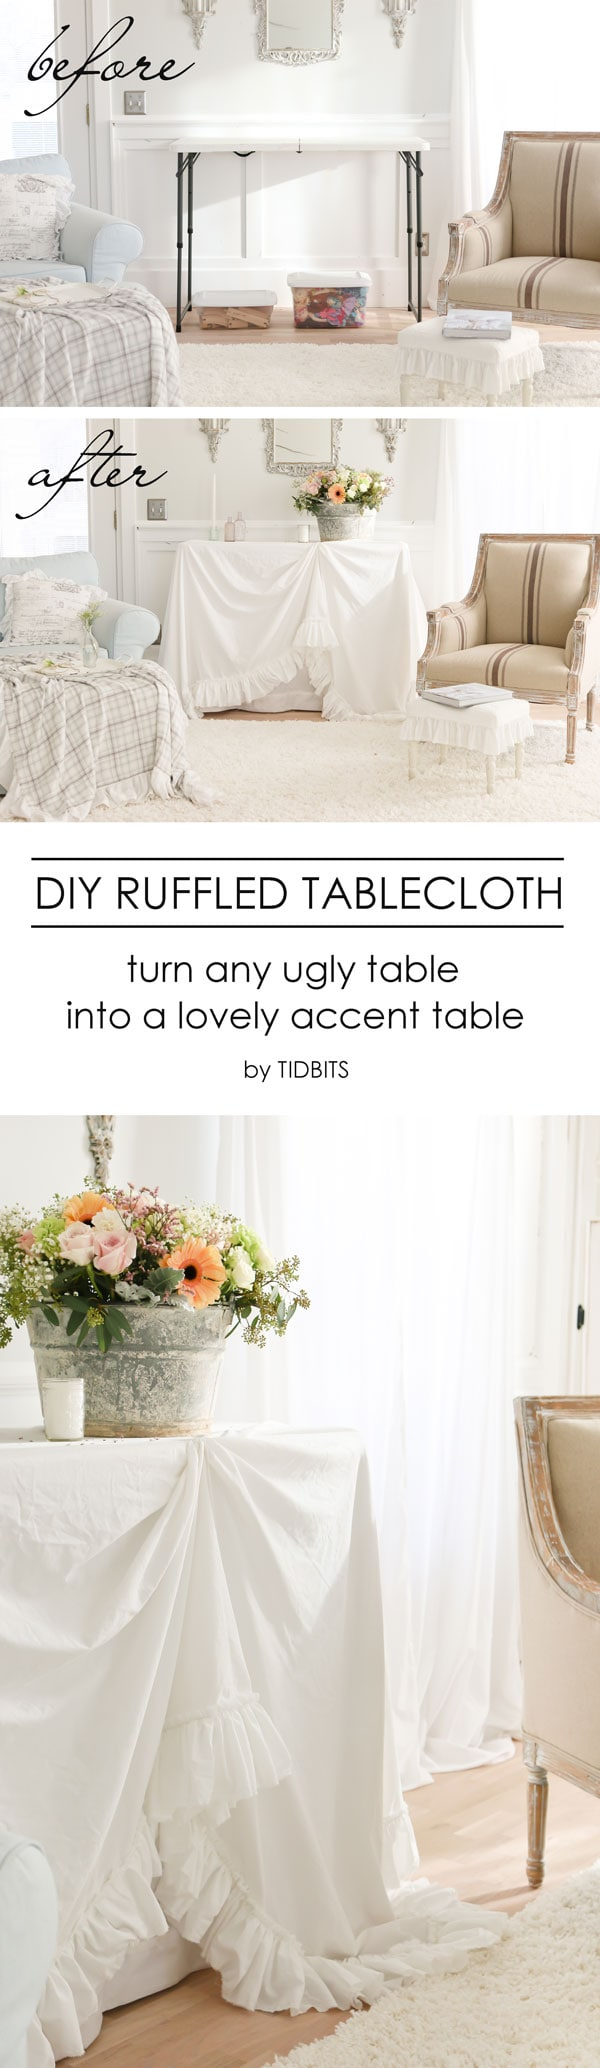 diy ruffled tablecloth french vintage style tidbits accent table cloth ruffle from cotton sheets turn your inexpensive fold tables into lovely outdoor egg chair yellow and grey